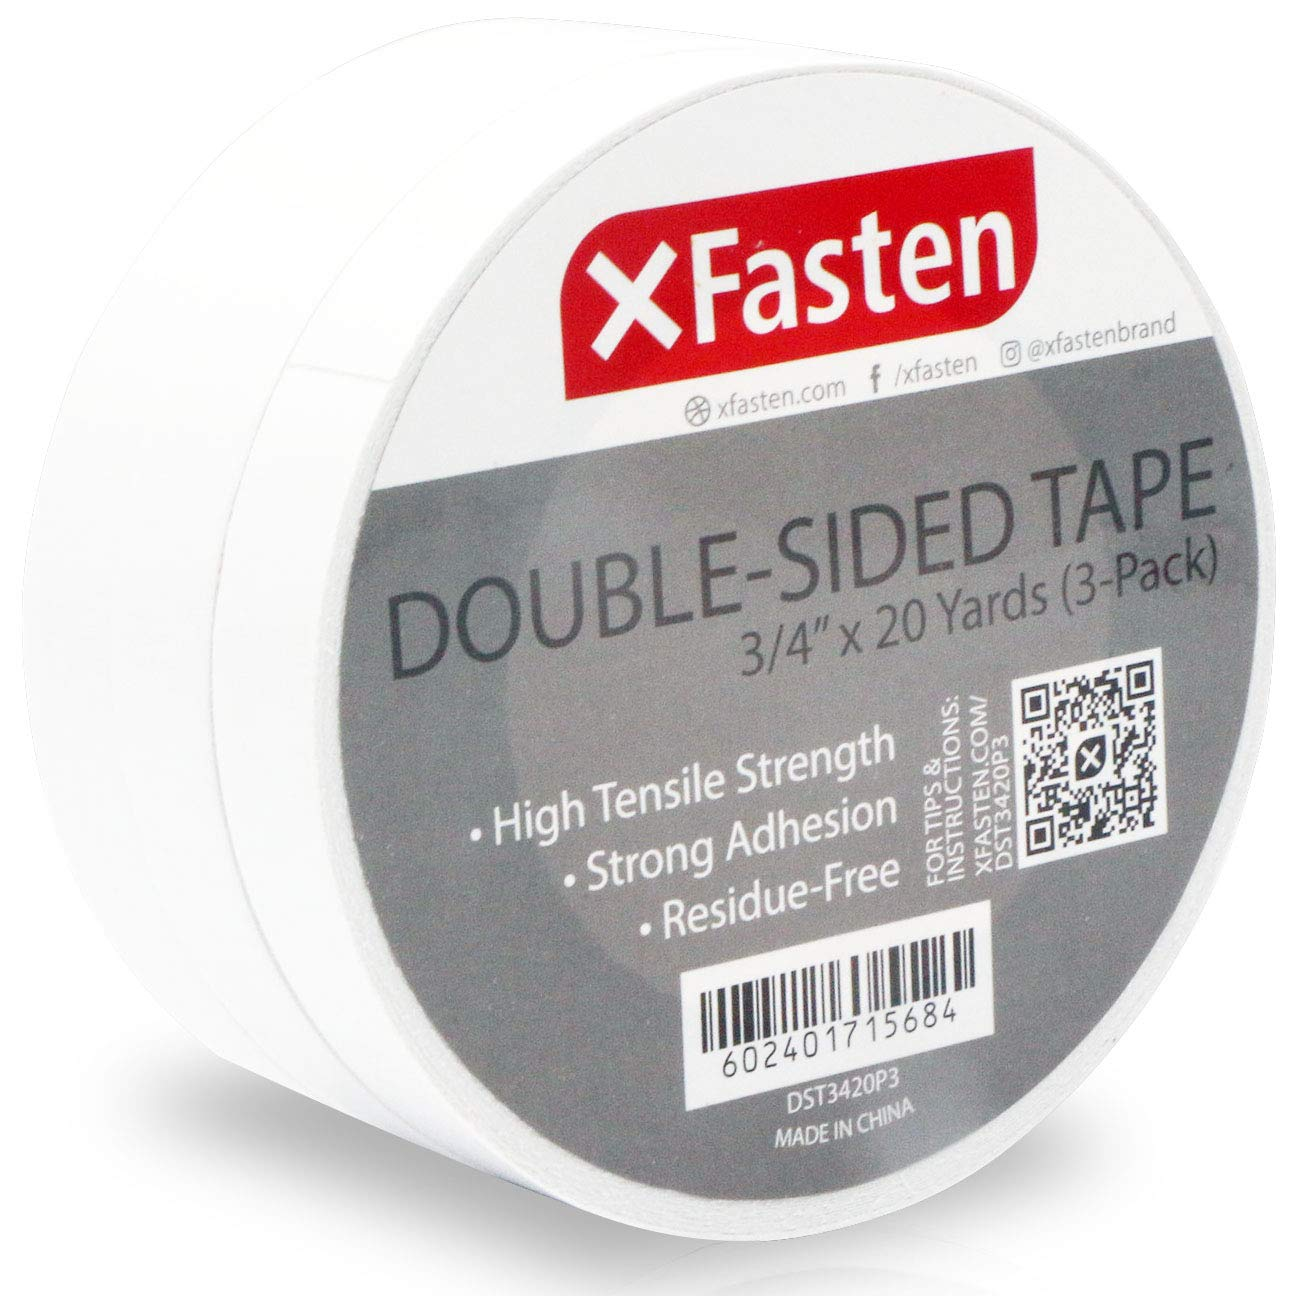 XFasten Double Sided Tape, Removable, 3/4-Inch by 20-Yards, Pack of 3